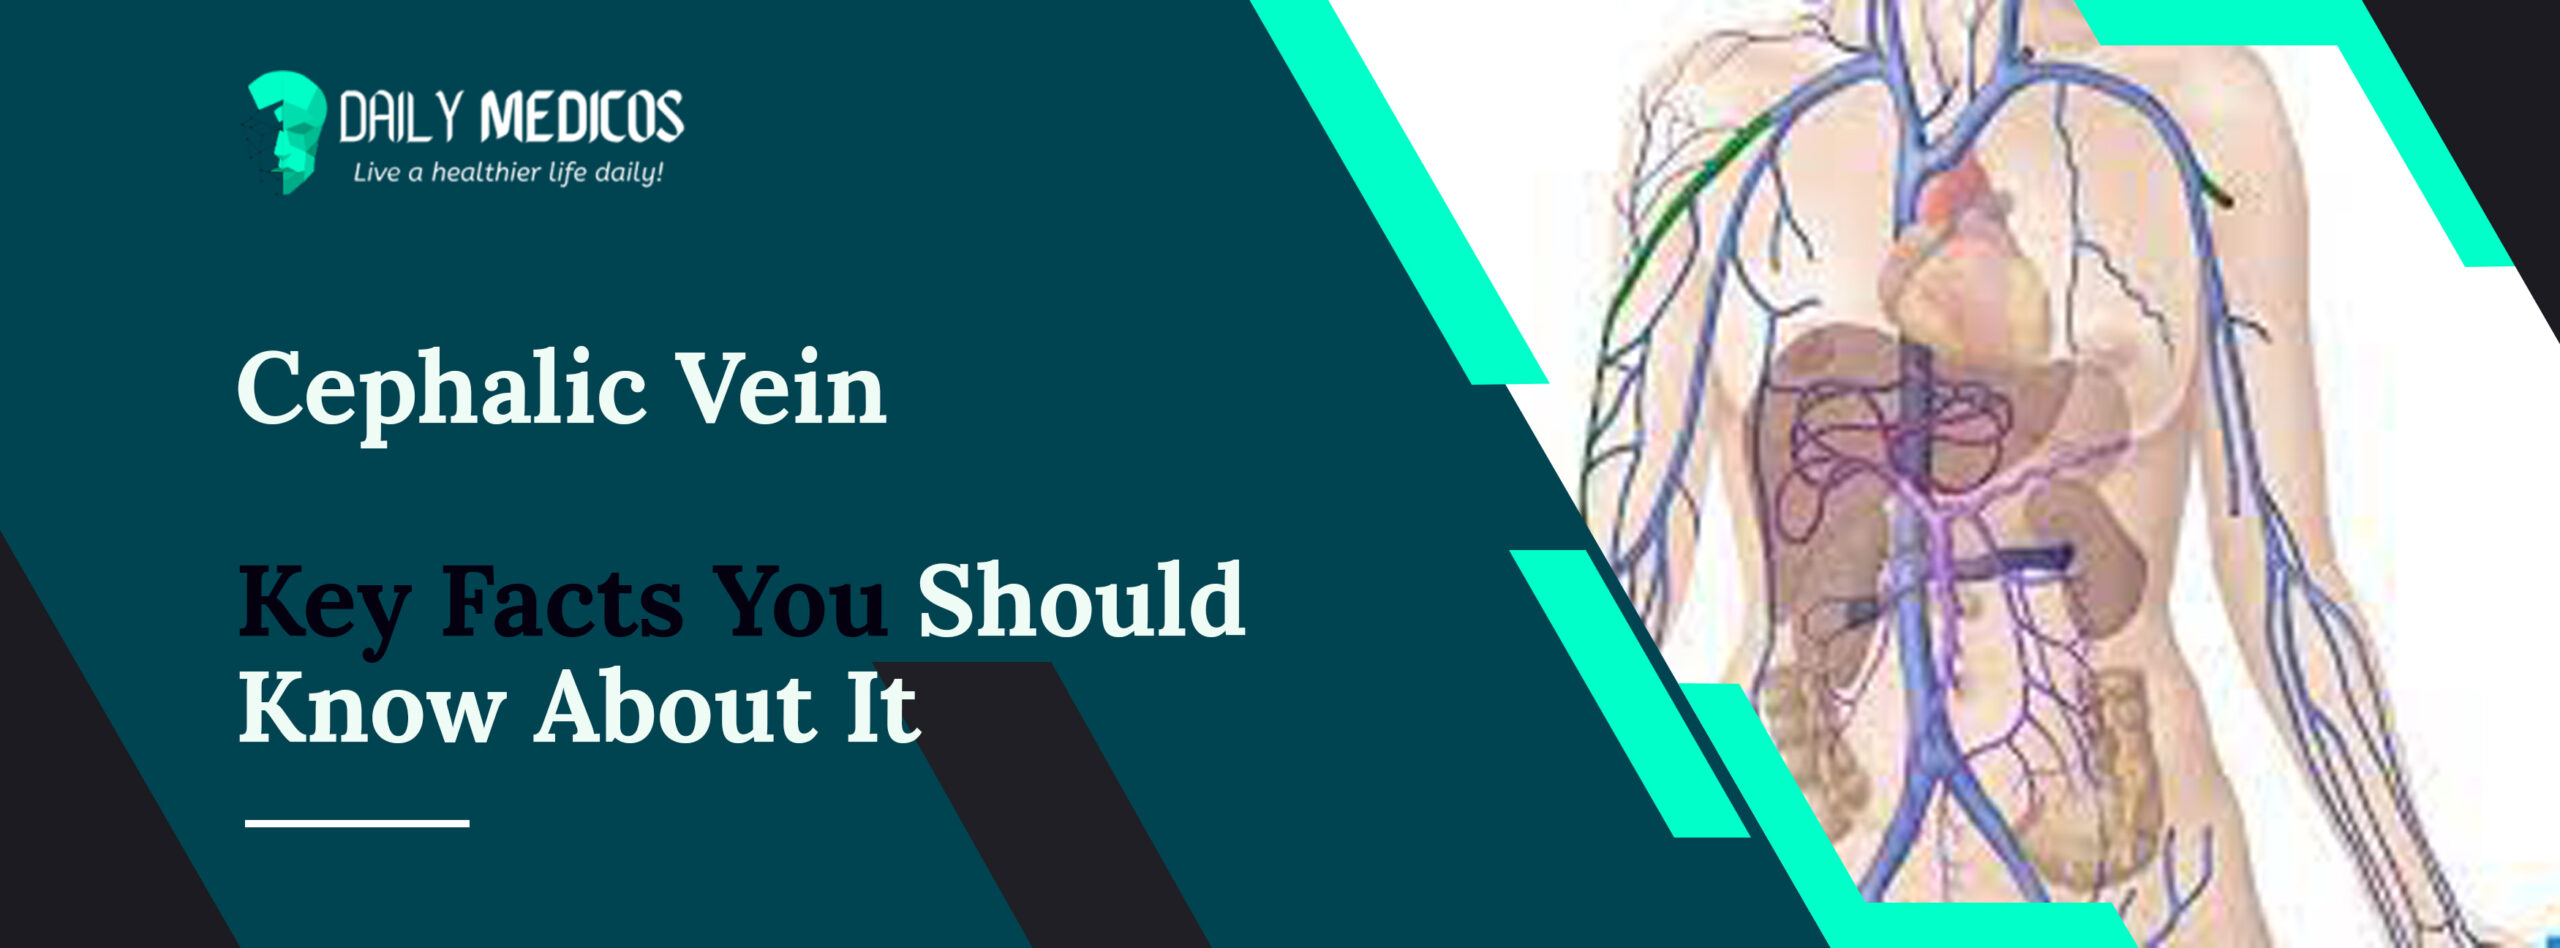 Cephalic vein [Key Facts You Should Know About It] 6 - Daily Medicos